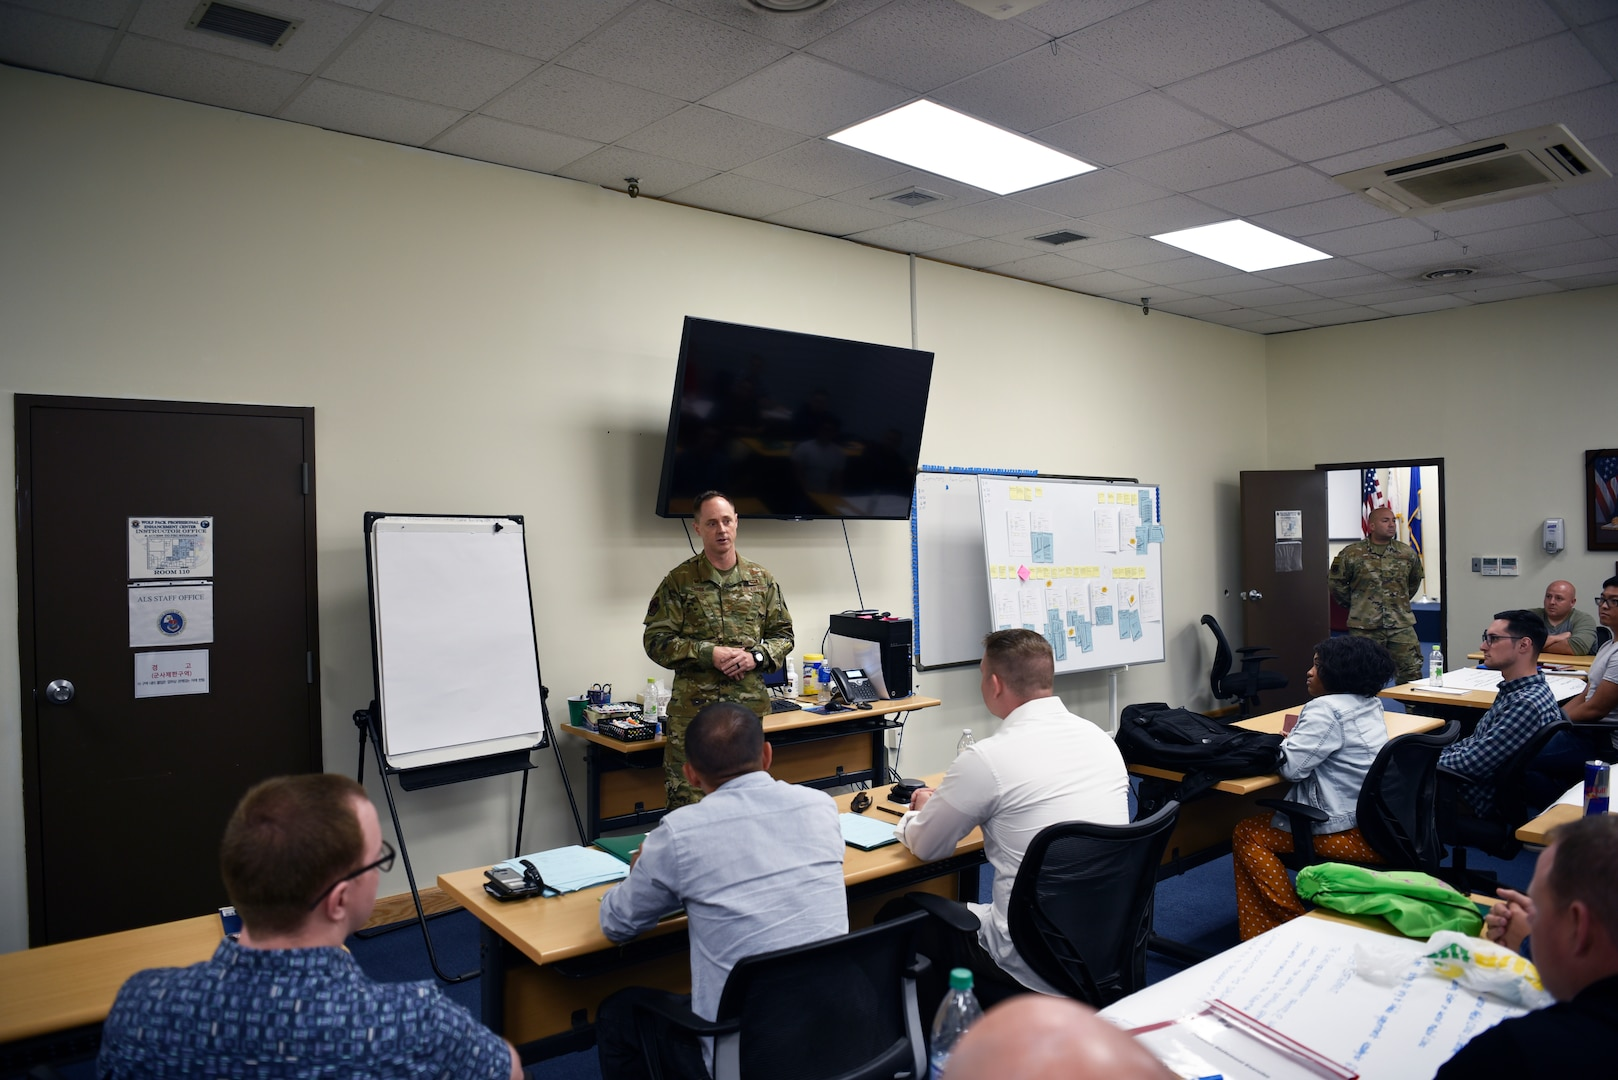 Airmen from the 8th Fighter Wing participate in a role-playing exercise mimicking a clinic customer service process during a Continuous Process Improvement class at Kunsan Air Base, Republic of Korea, July 11, 2019. The participants dealt with redundant processes, before learning to write a problem statement and find innovative solutions.